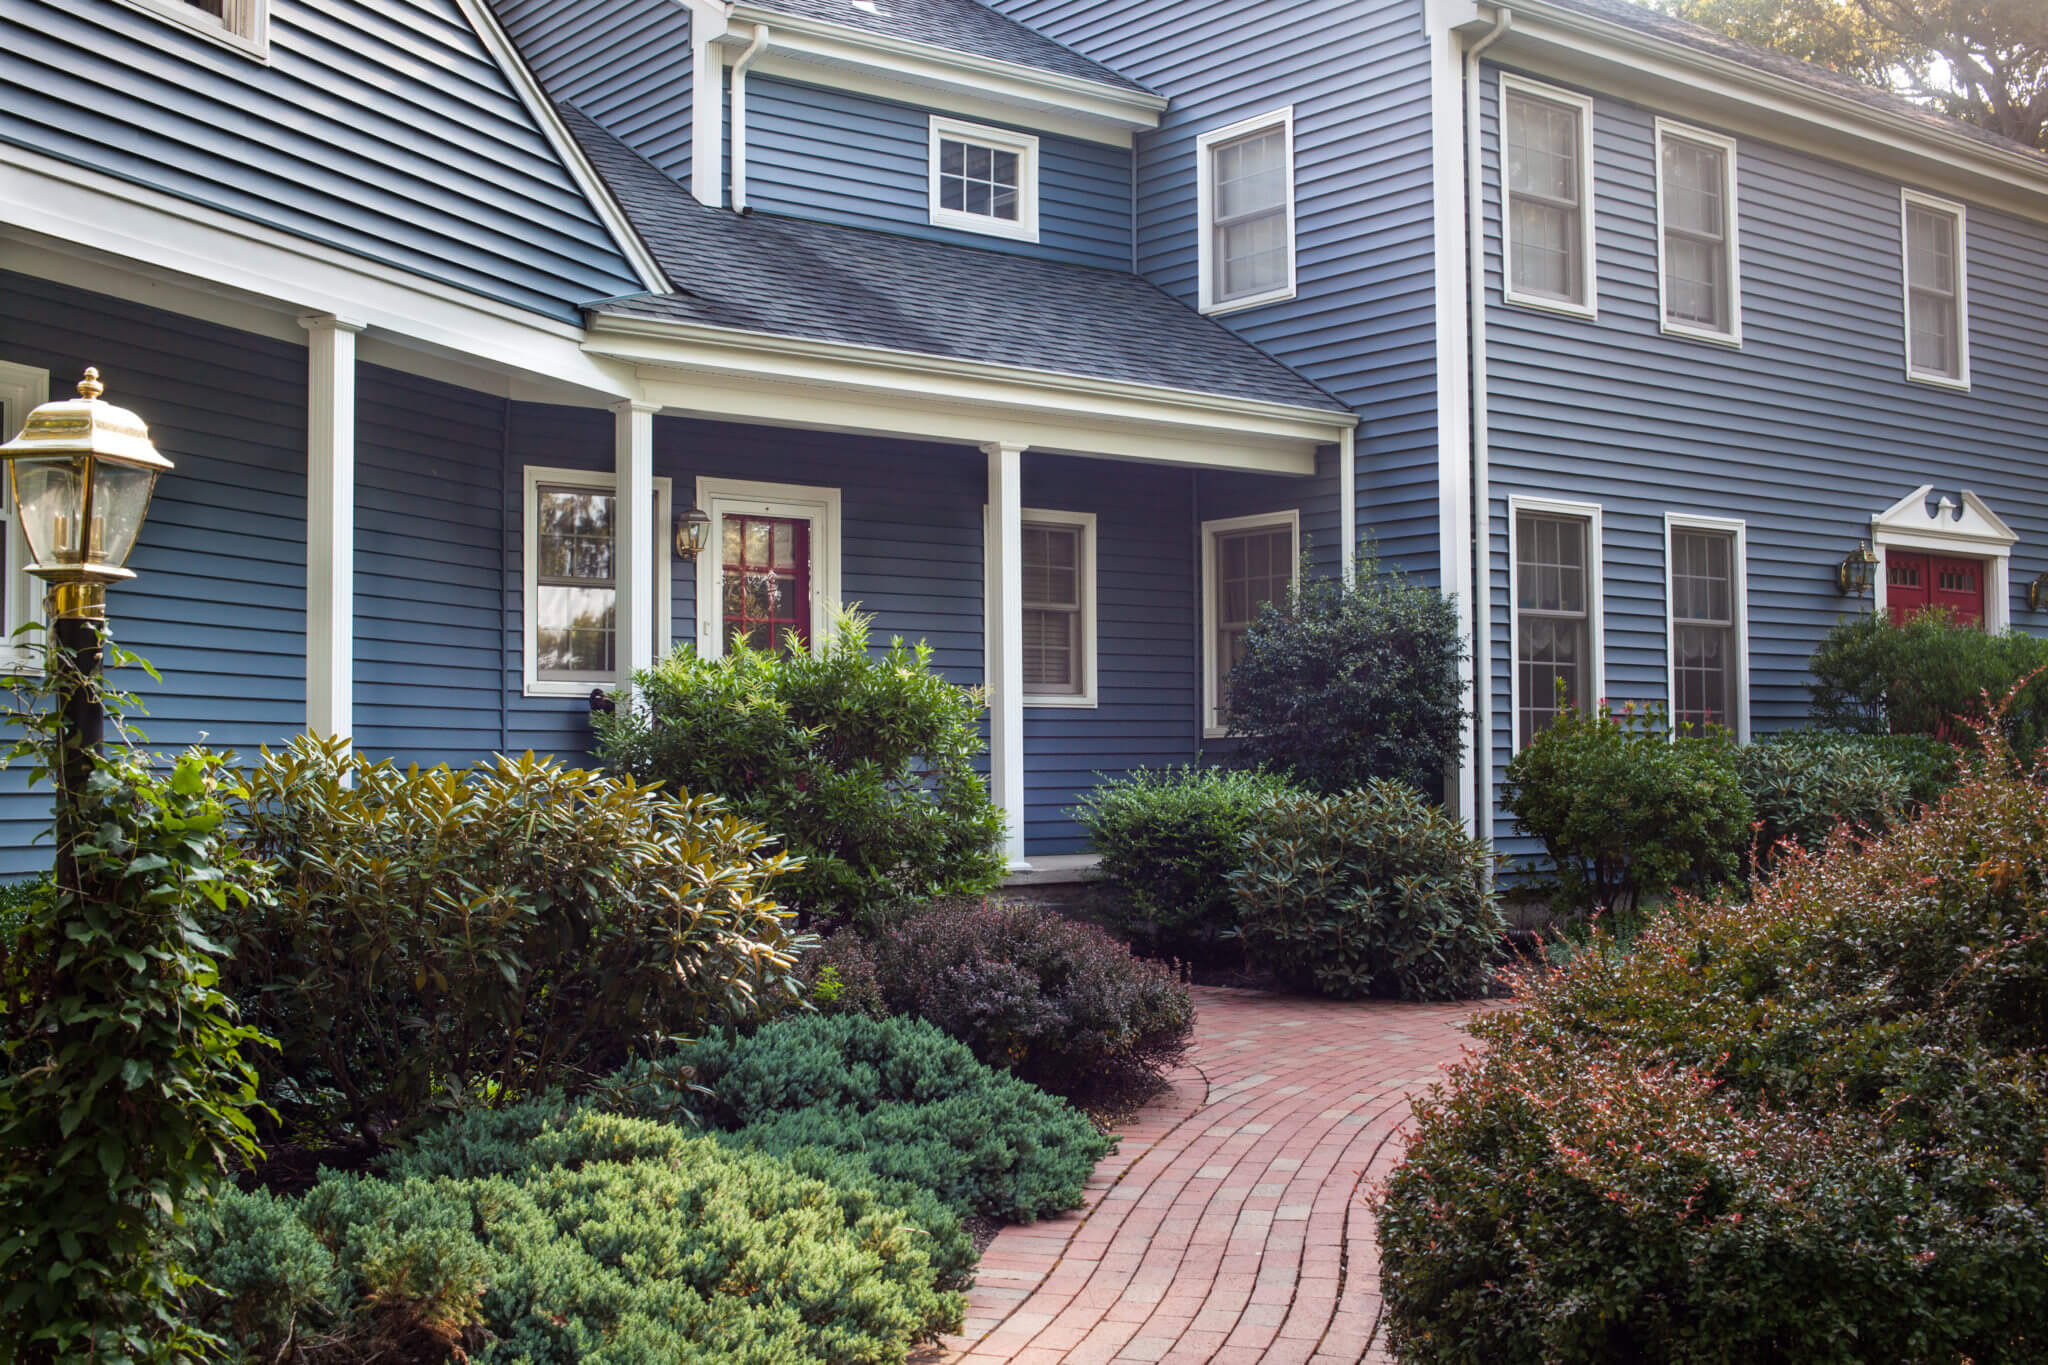 Blue Vinyl Siding Installed on a Remodeled Colonial Home in RI by Marshall Building & Remodeling